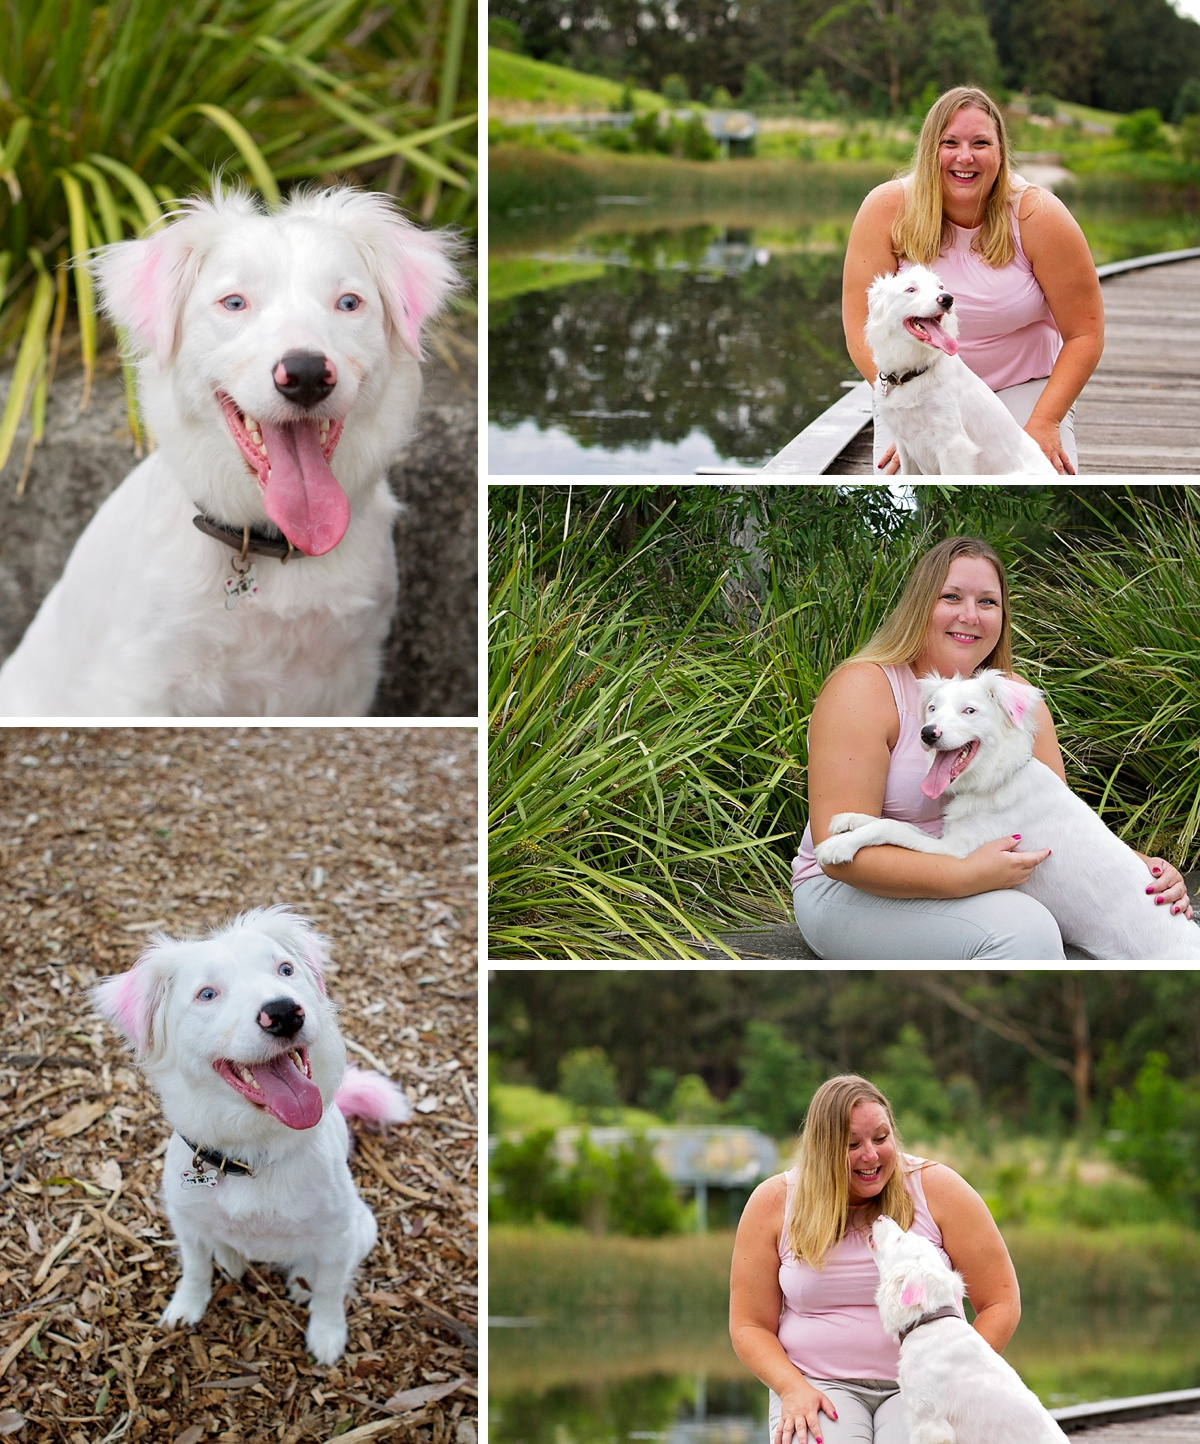 White dog Angel and her owner take part in the Dog Days of Summer with Sydney pet photographer, Pawtastic Photography in Sydney Park